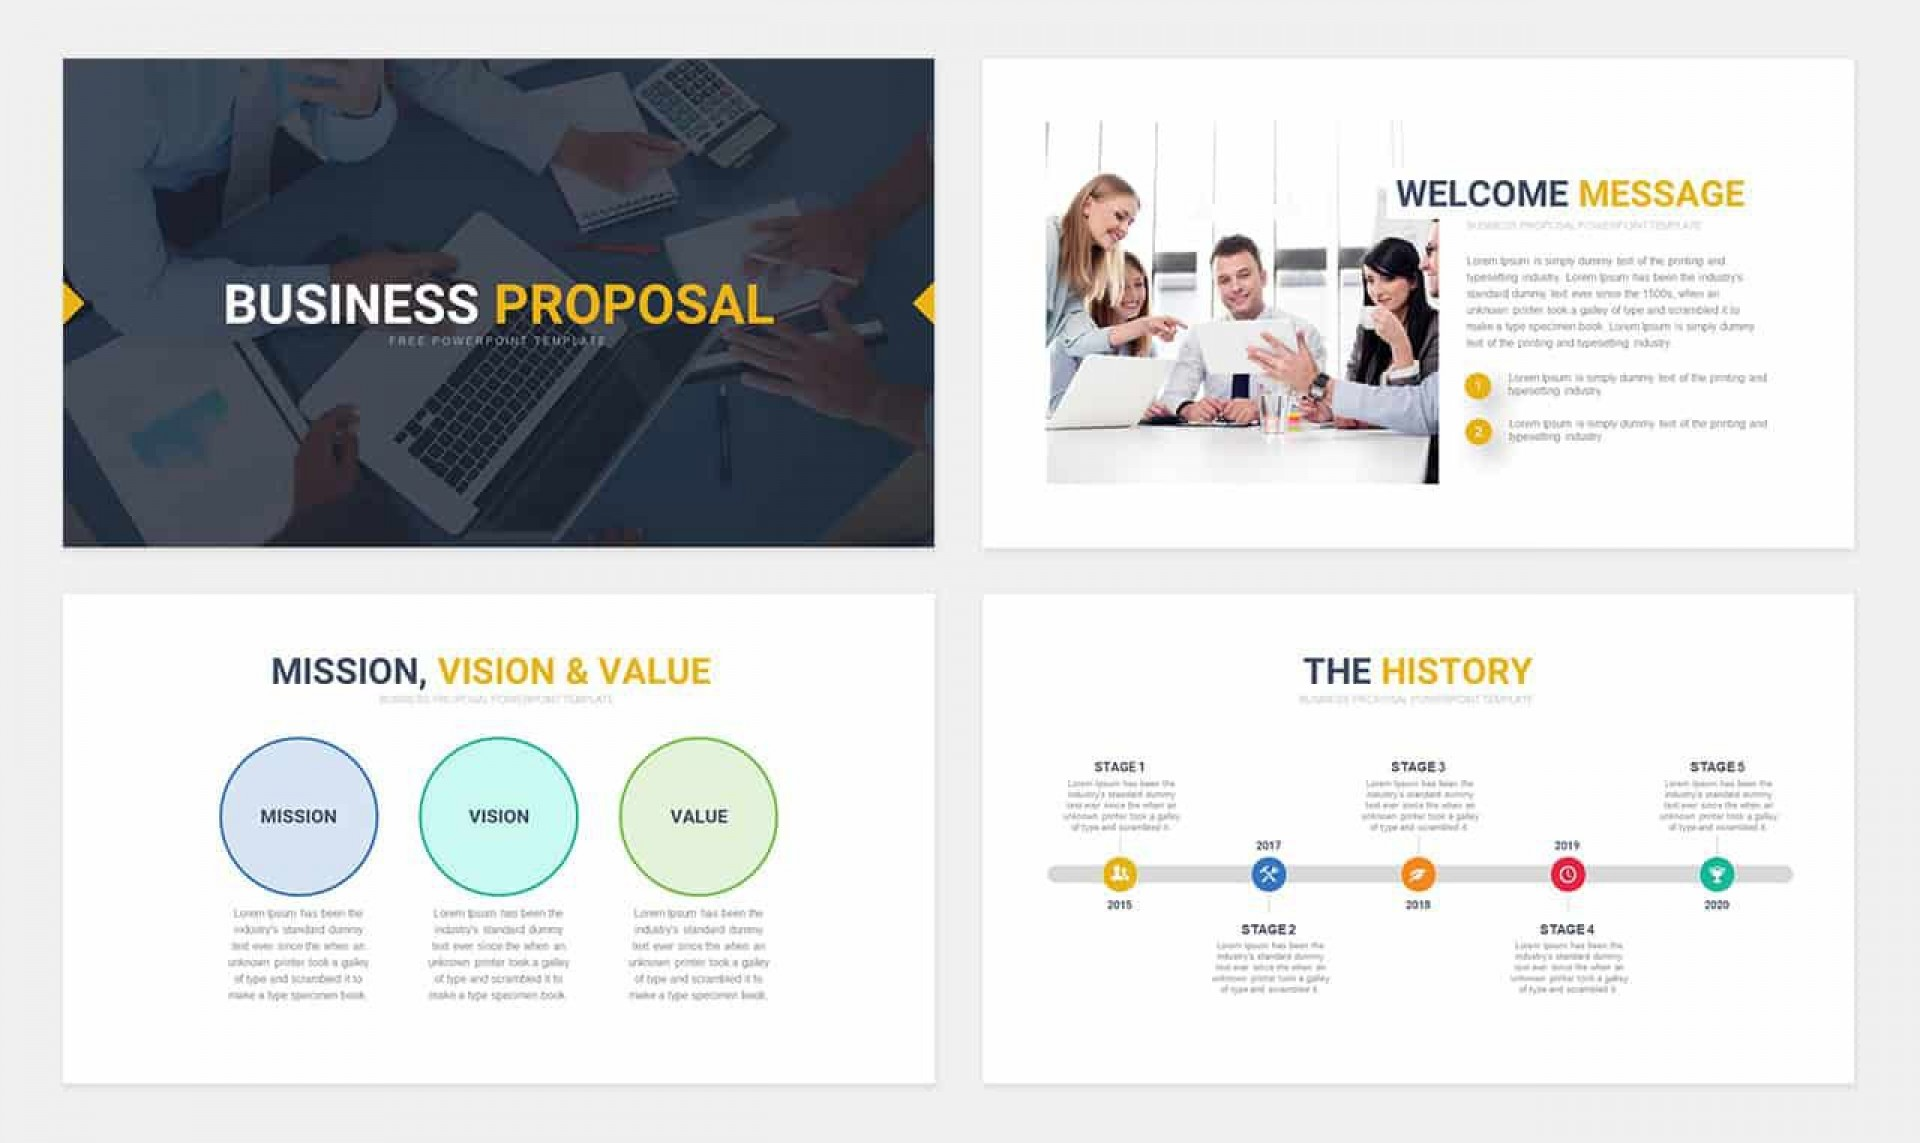 004 Imposing Free Busines Proposal Template Powerpoint Example  Best Plan Ppt 2020 Sale1920